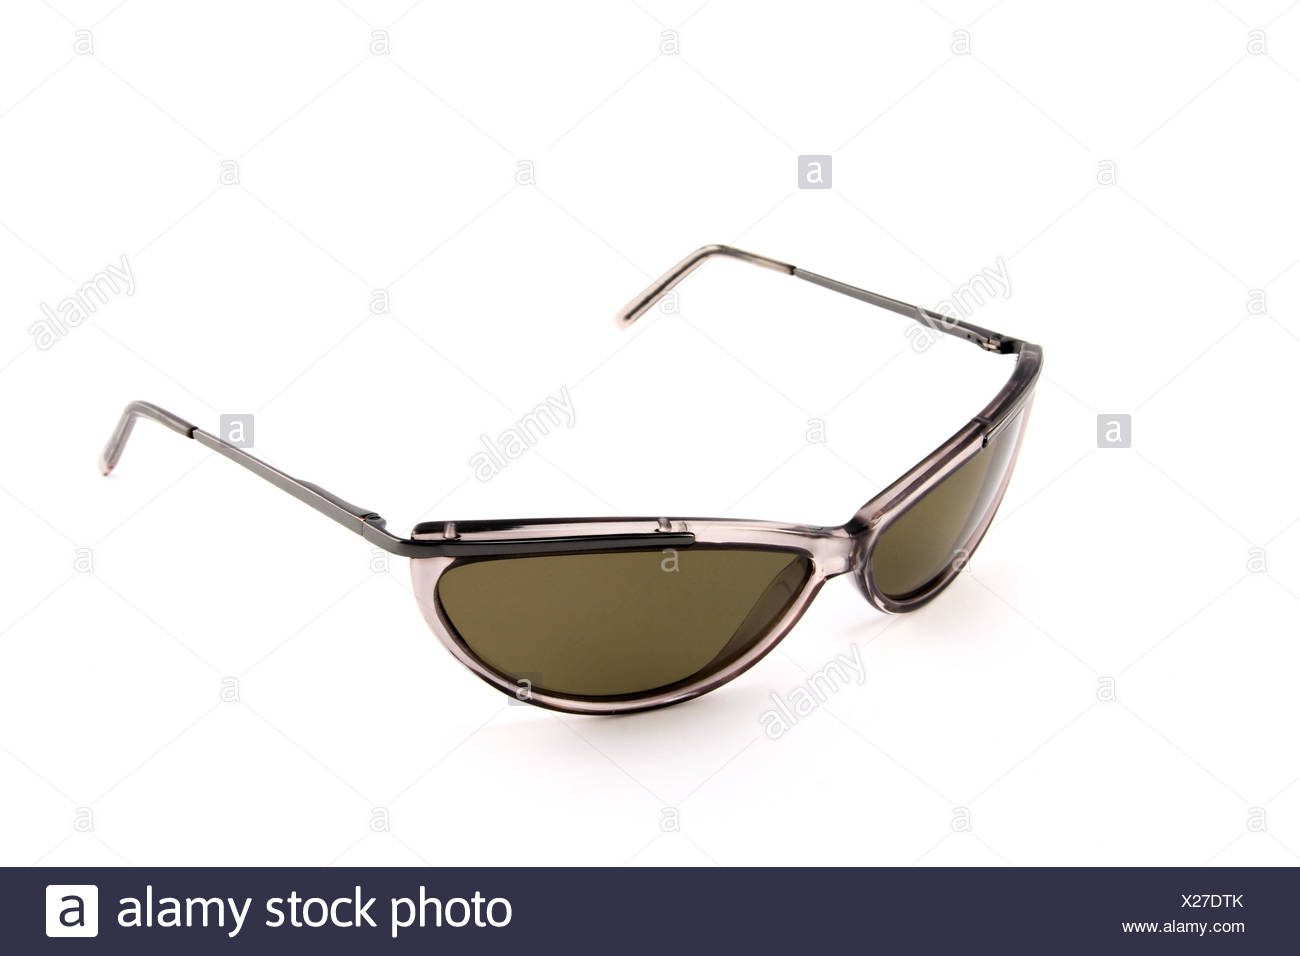 5fc1efcc0aa Brown Sunglasses On White Background Stock Photos   Brown Sunglasses ...